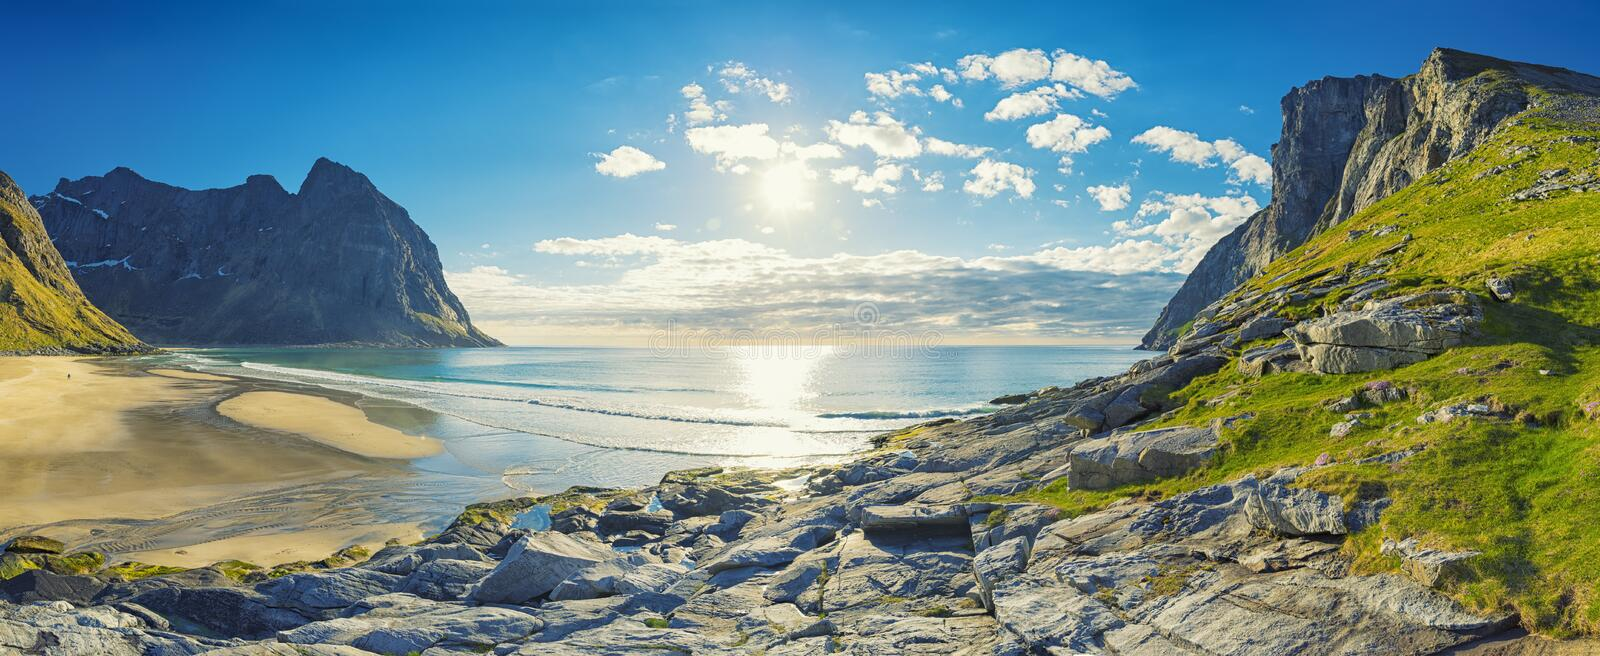 Kvalvika Beach on the Lofoten Islands, Norway royalty free stock images